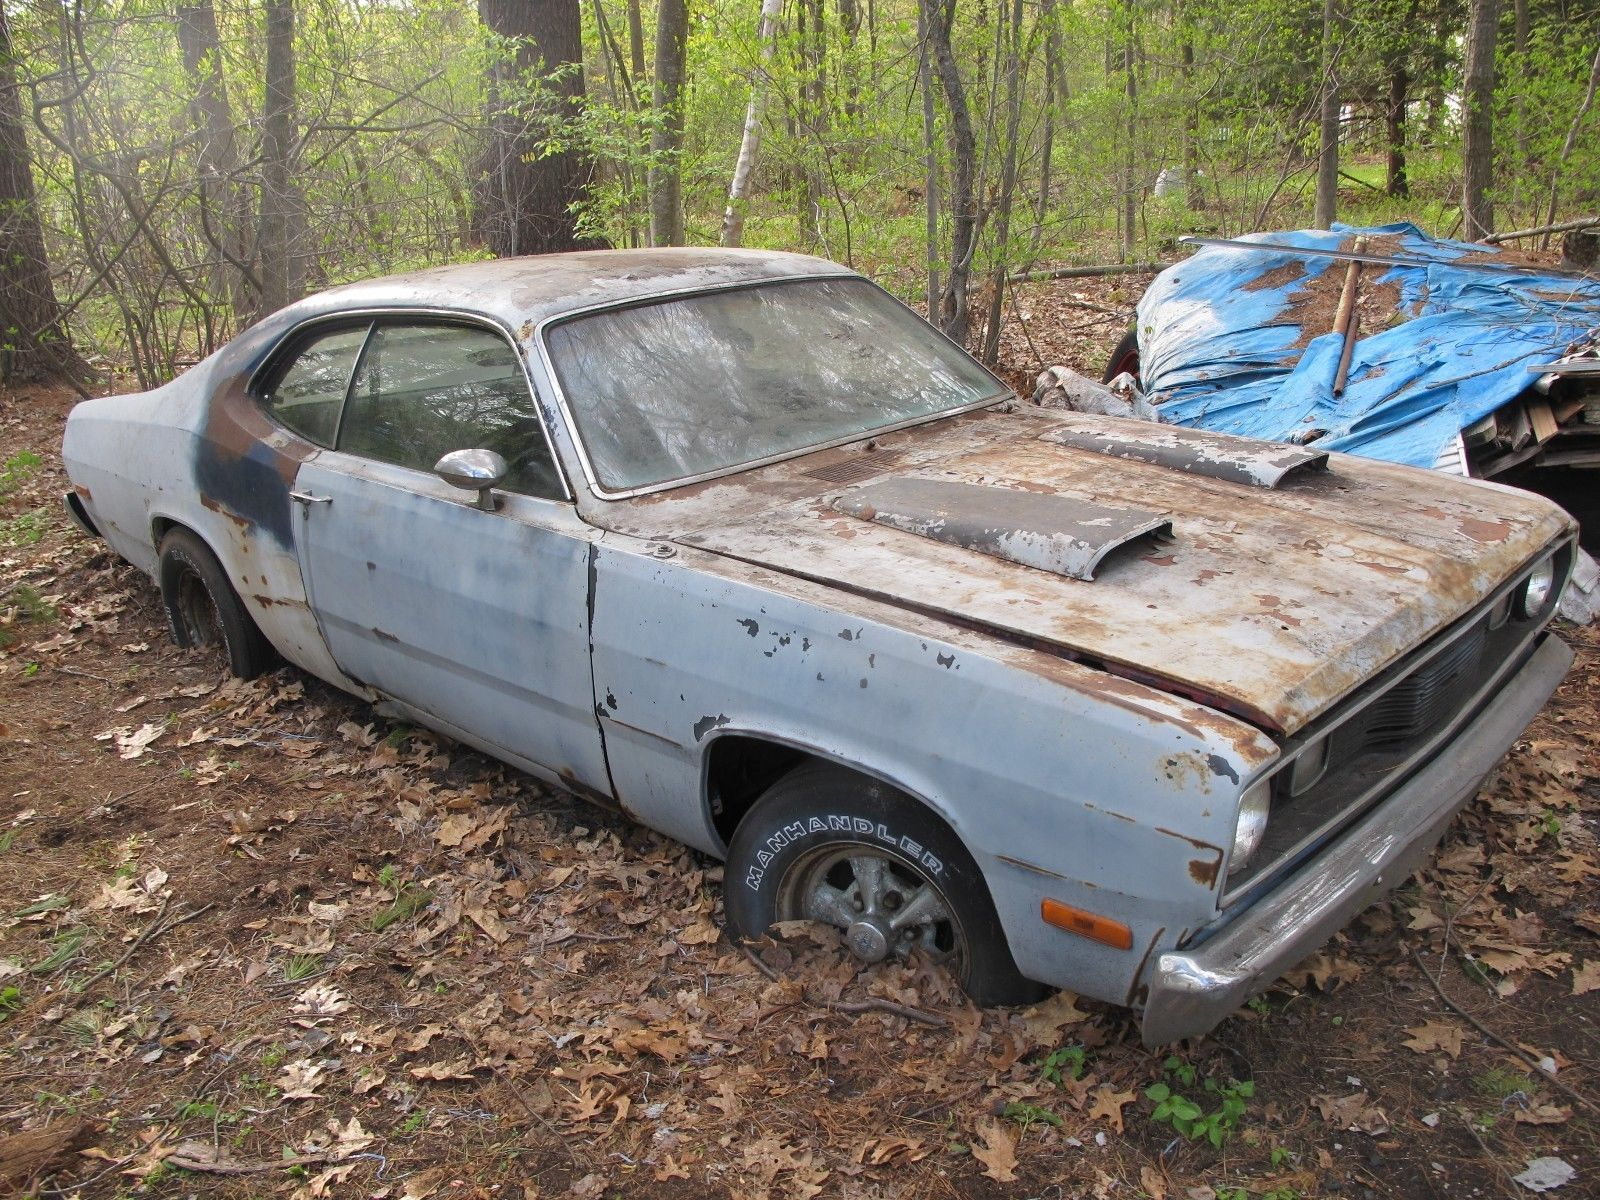 1974 Plymouth Duster 360 Plymouth Duster Junkyard Cars Abandoned Cars